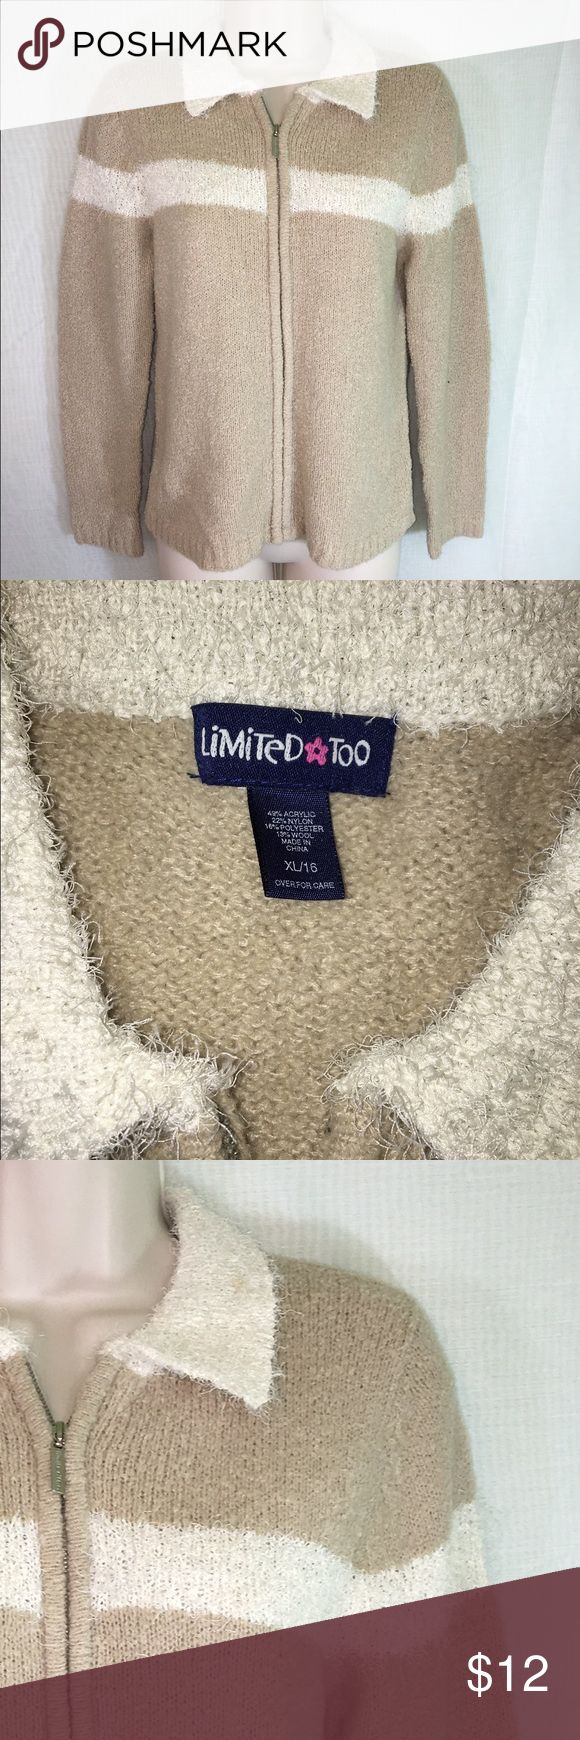 Girls Limited Too Zip Up Sweater-XL A neutral zip up sweater from Limited Too in a size XL. The material is warm and comfy and the color could be paired with anything. Would be a great addition for the school wardrobe this fall! Limited Too Sweaters Cardigans